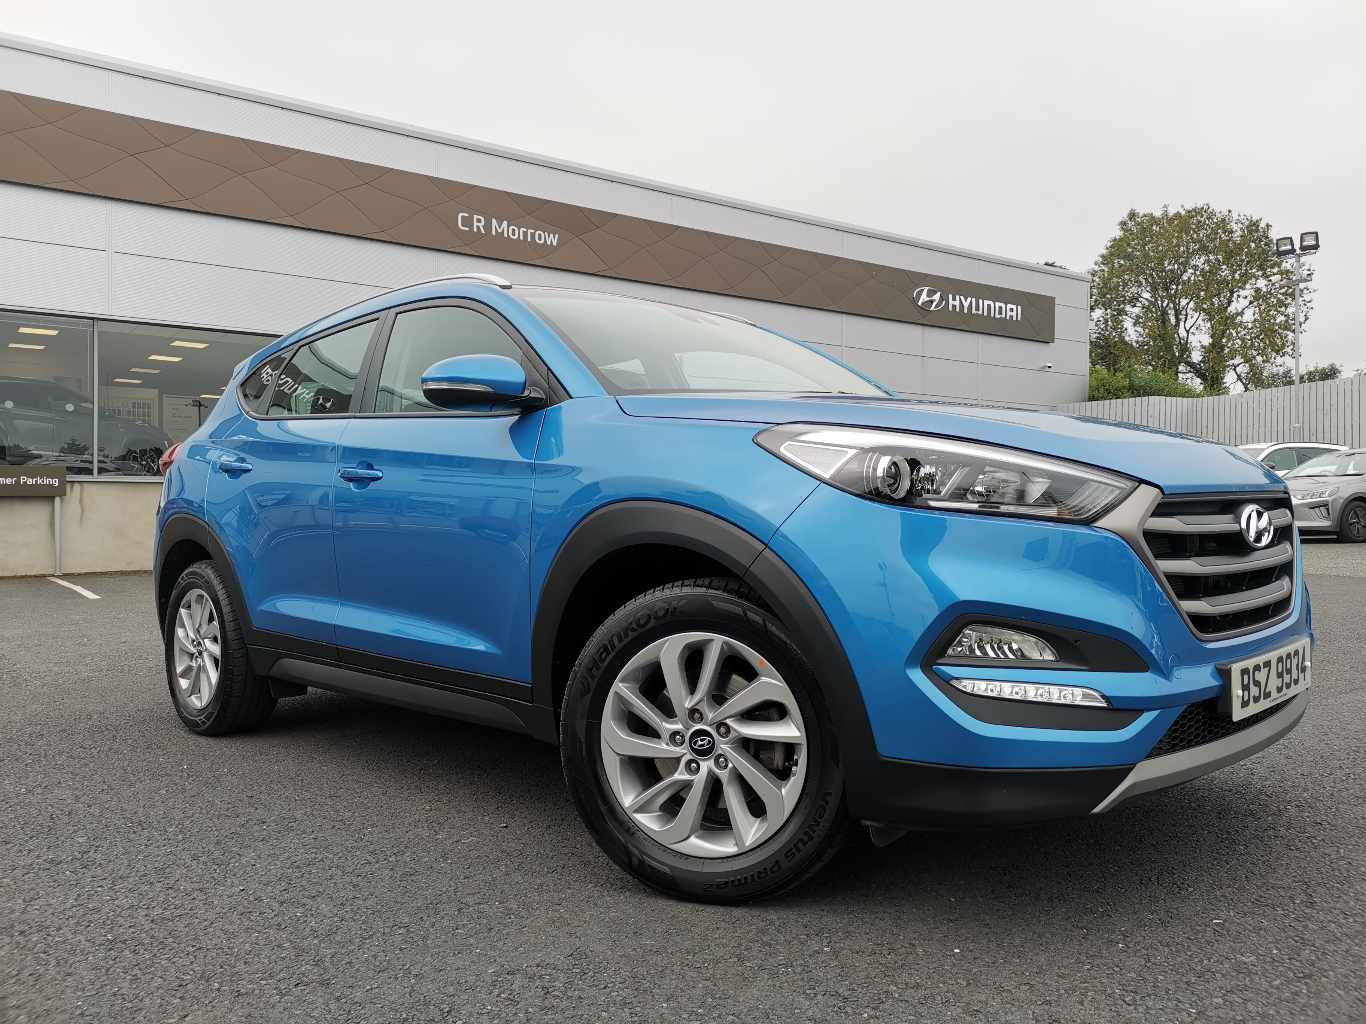 Hyundai Tucson 1.7CRDi SE BlueDrive (116PS)